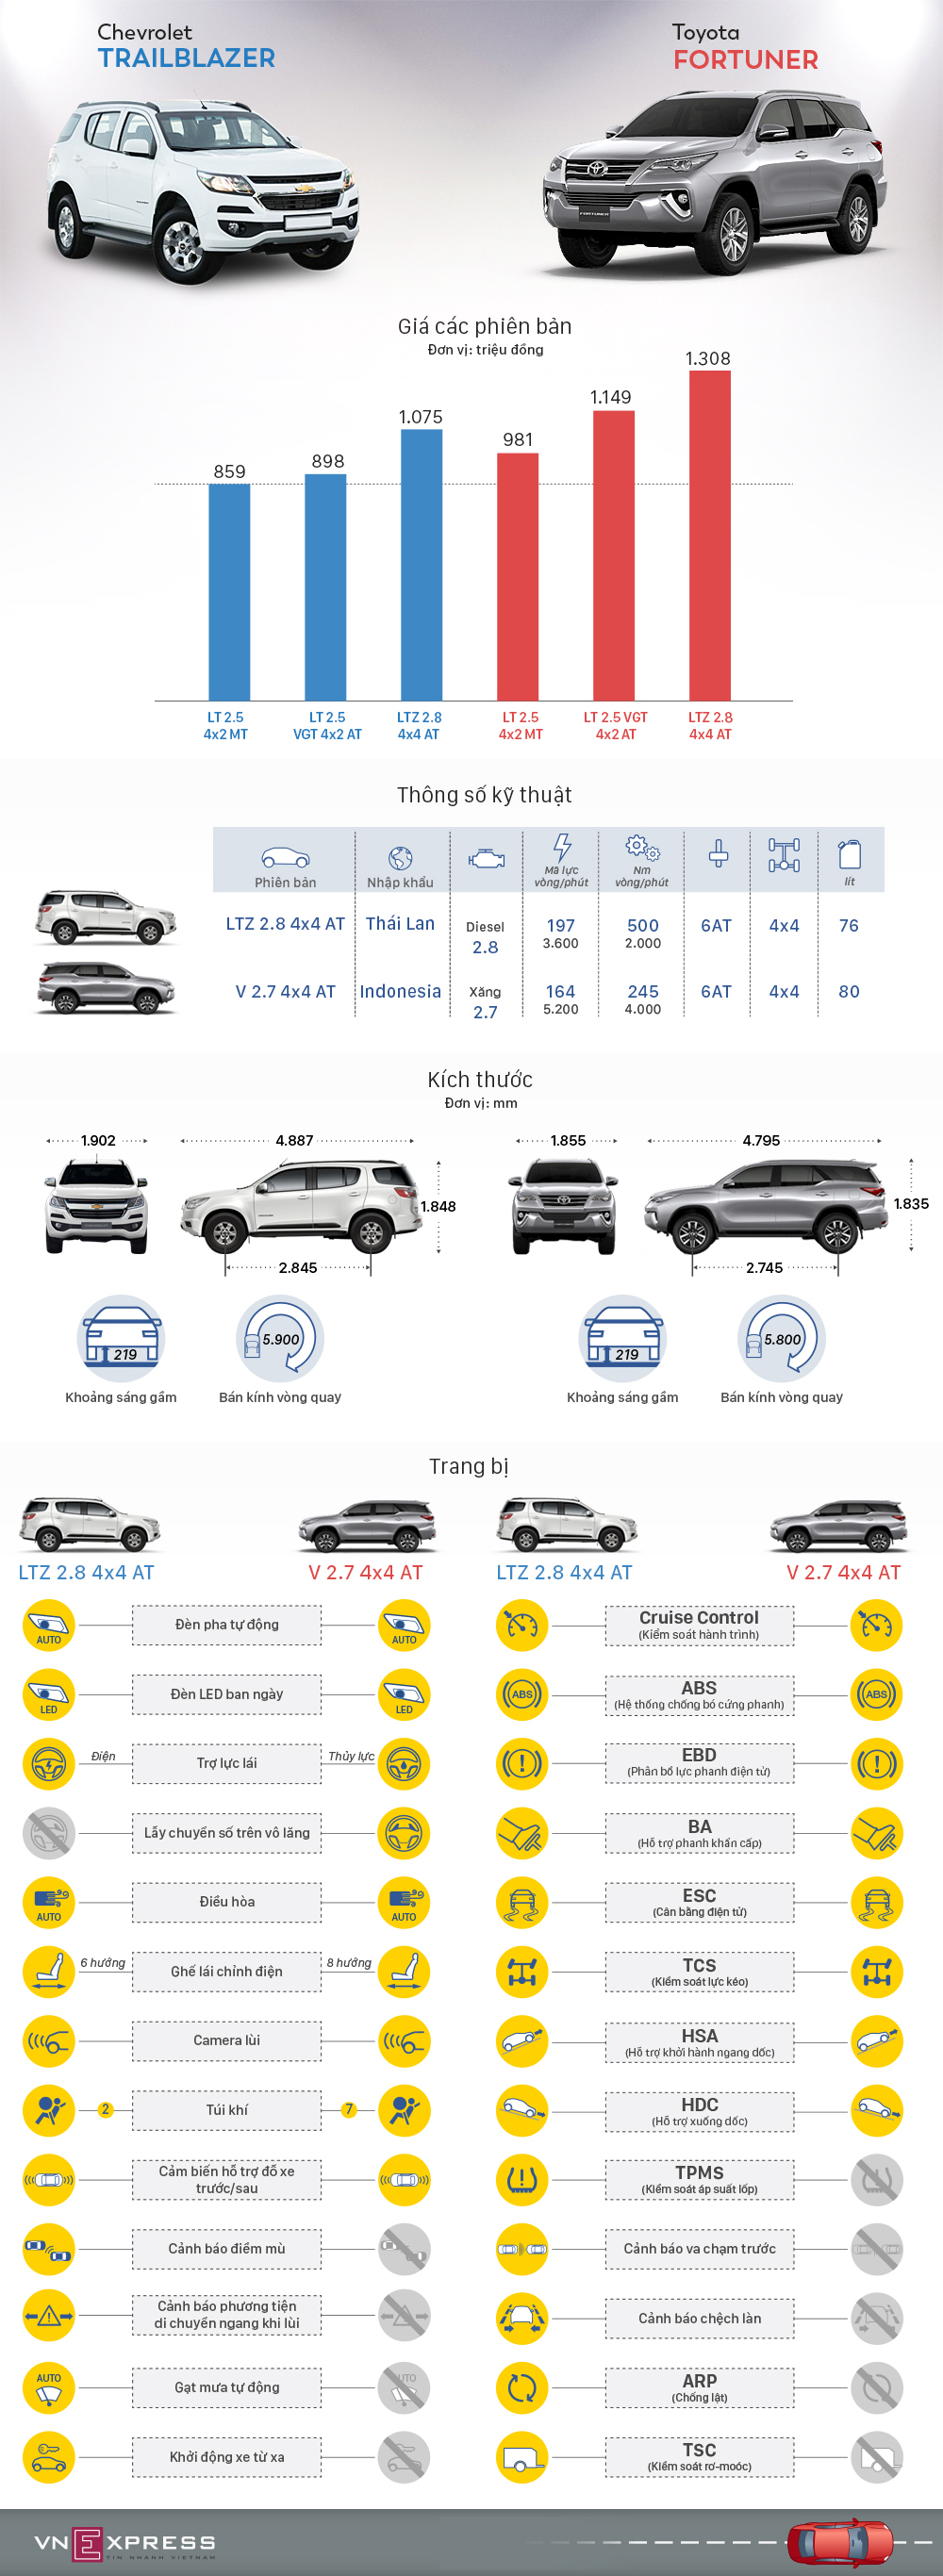 trailblazer-vs-fortuner.jpg